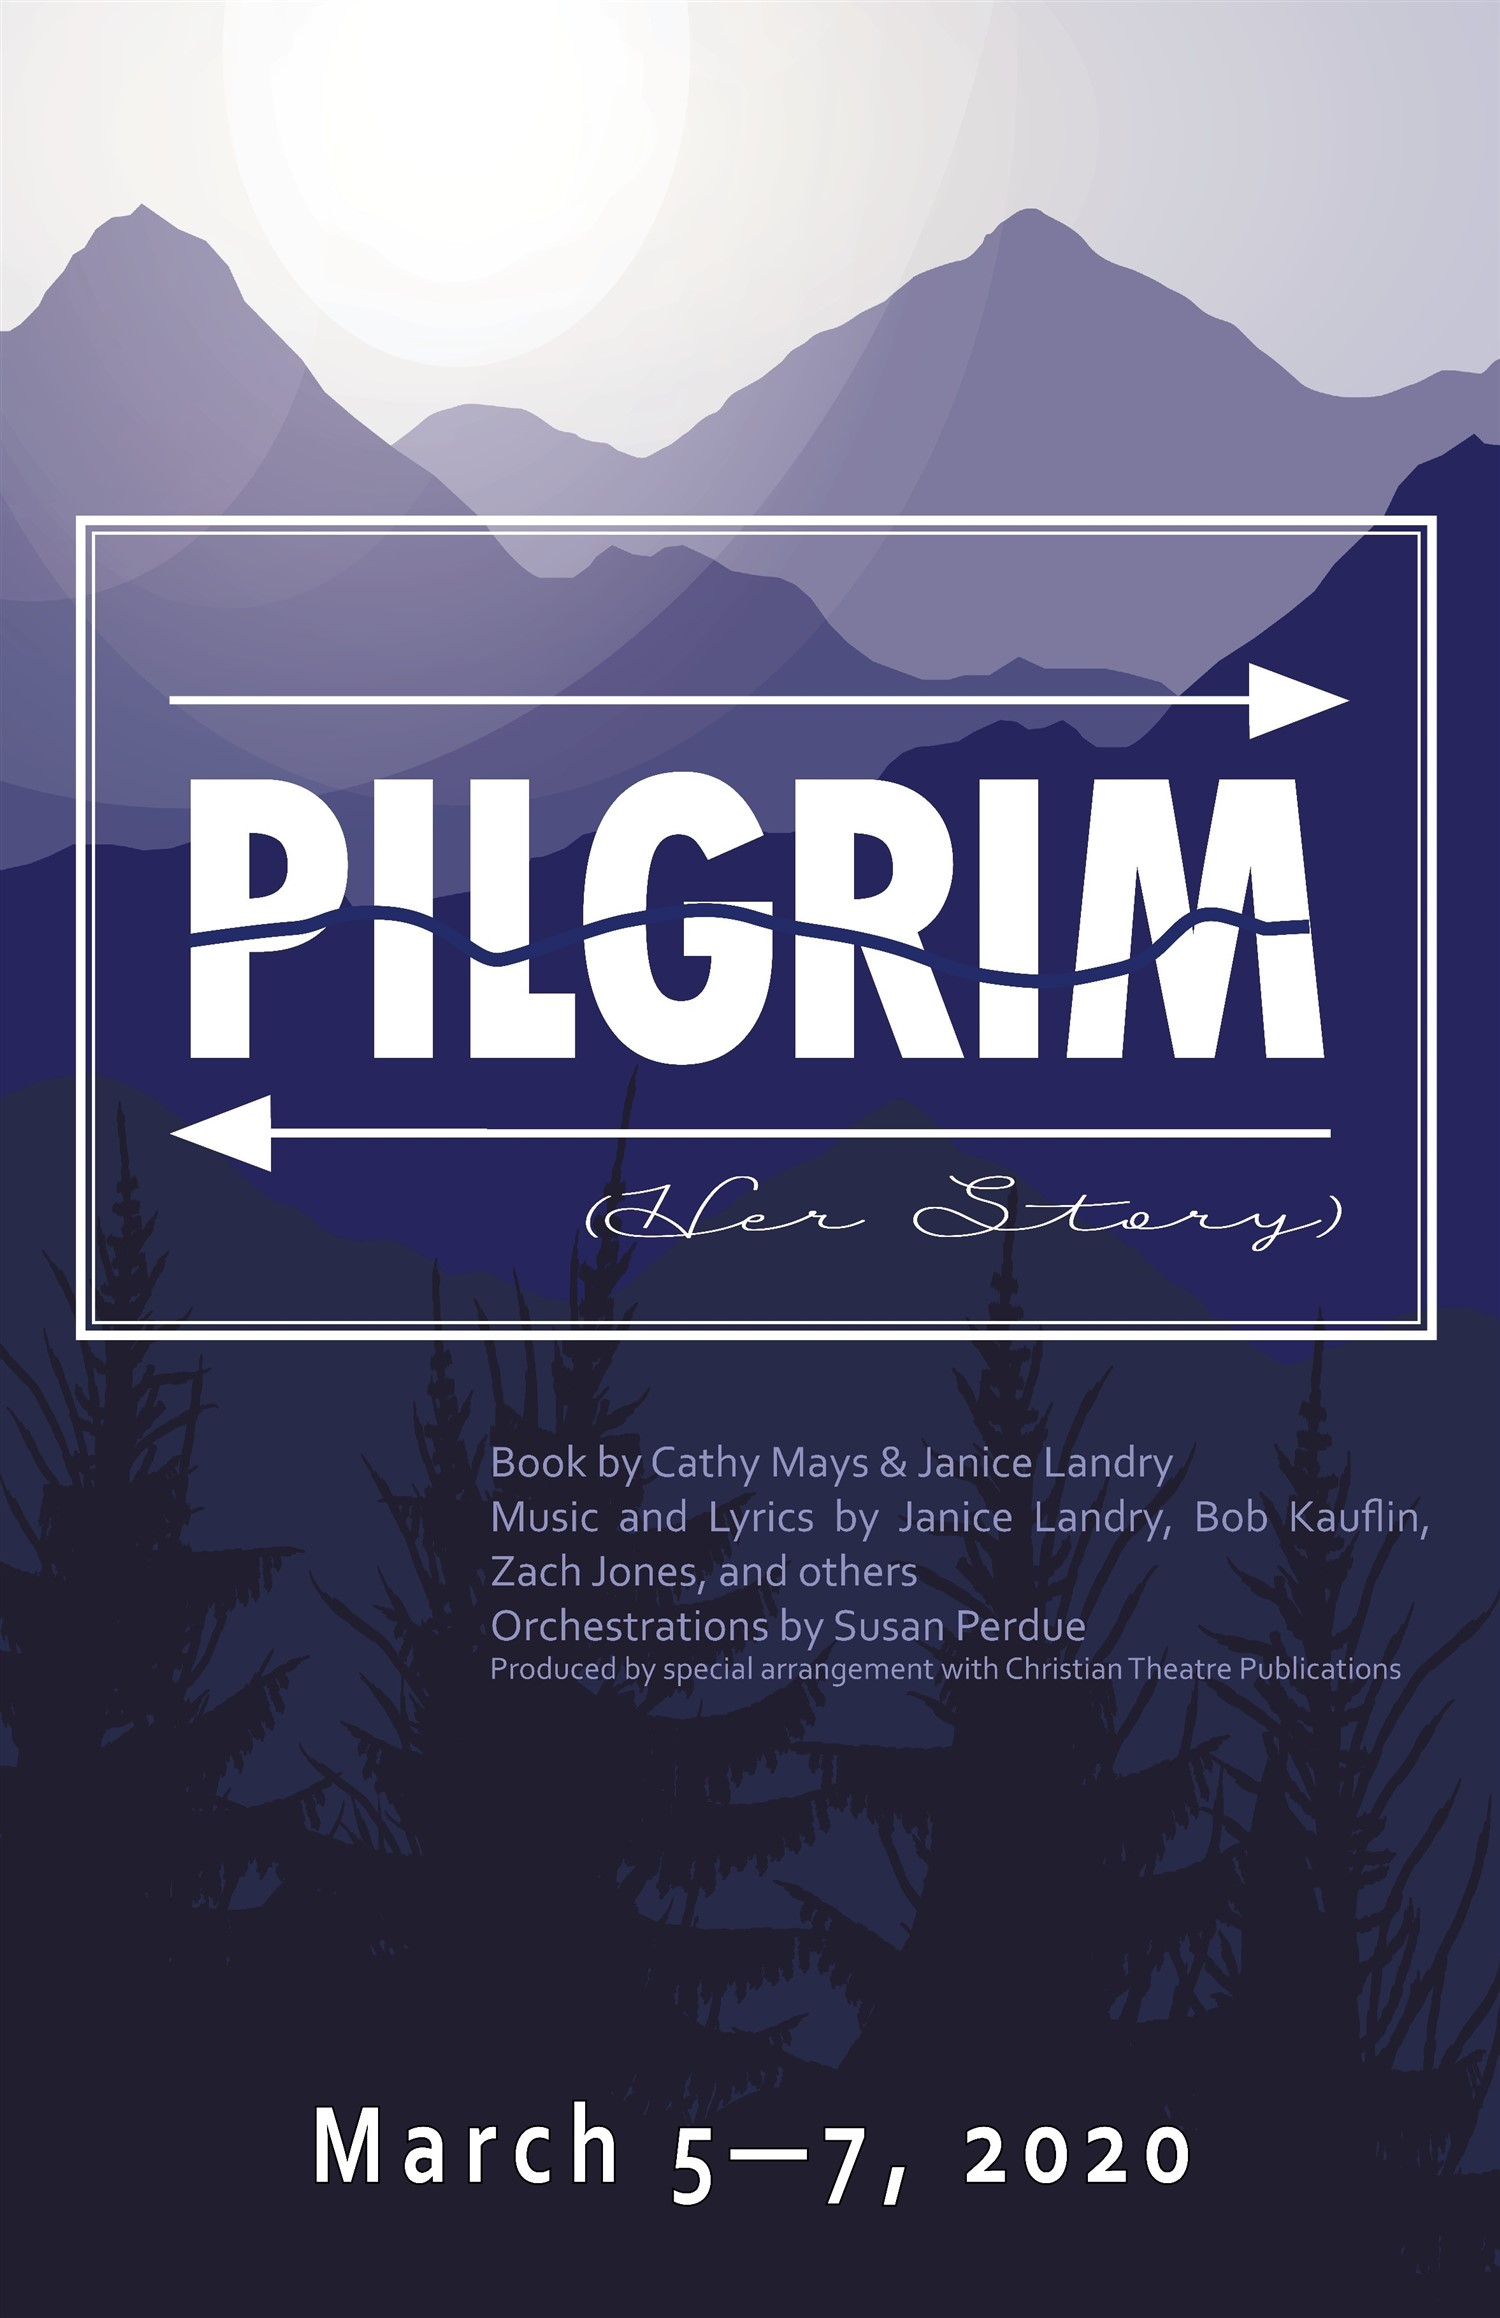 Pilgrim (Her Story) Thursday, March 5, 2020 @ 7:30 pm on Mar 05, 19:30@Spiritual Twist Productions - Pick a seat, Buy tickets and Get information on Spiritual Twist Productions tickets.spiritualtwist.com